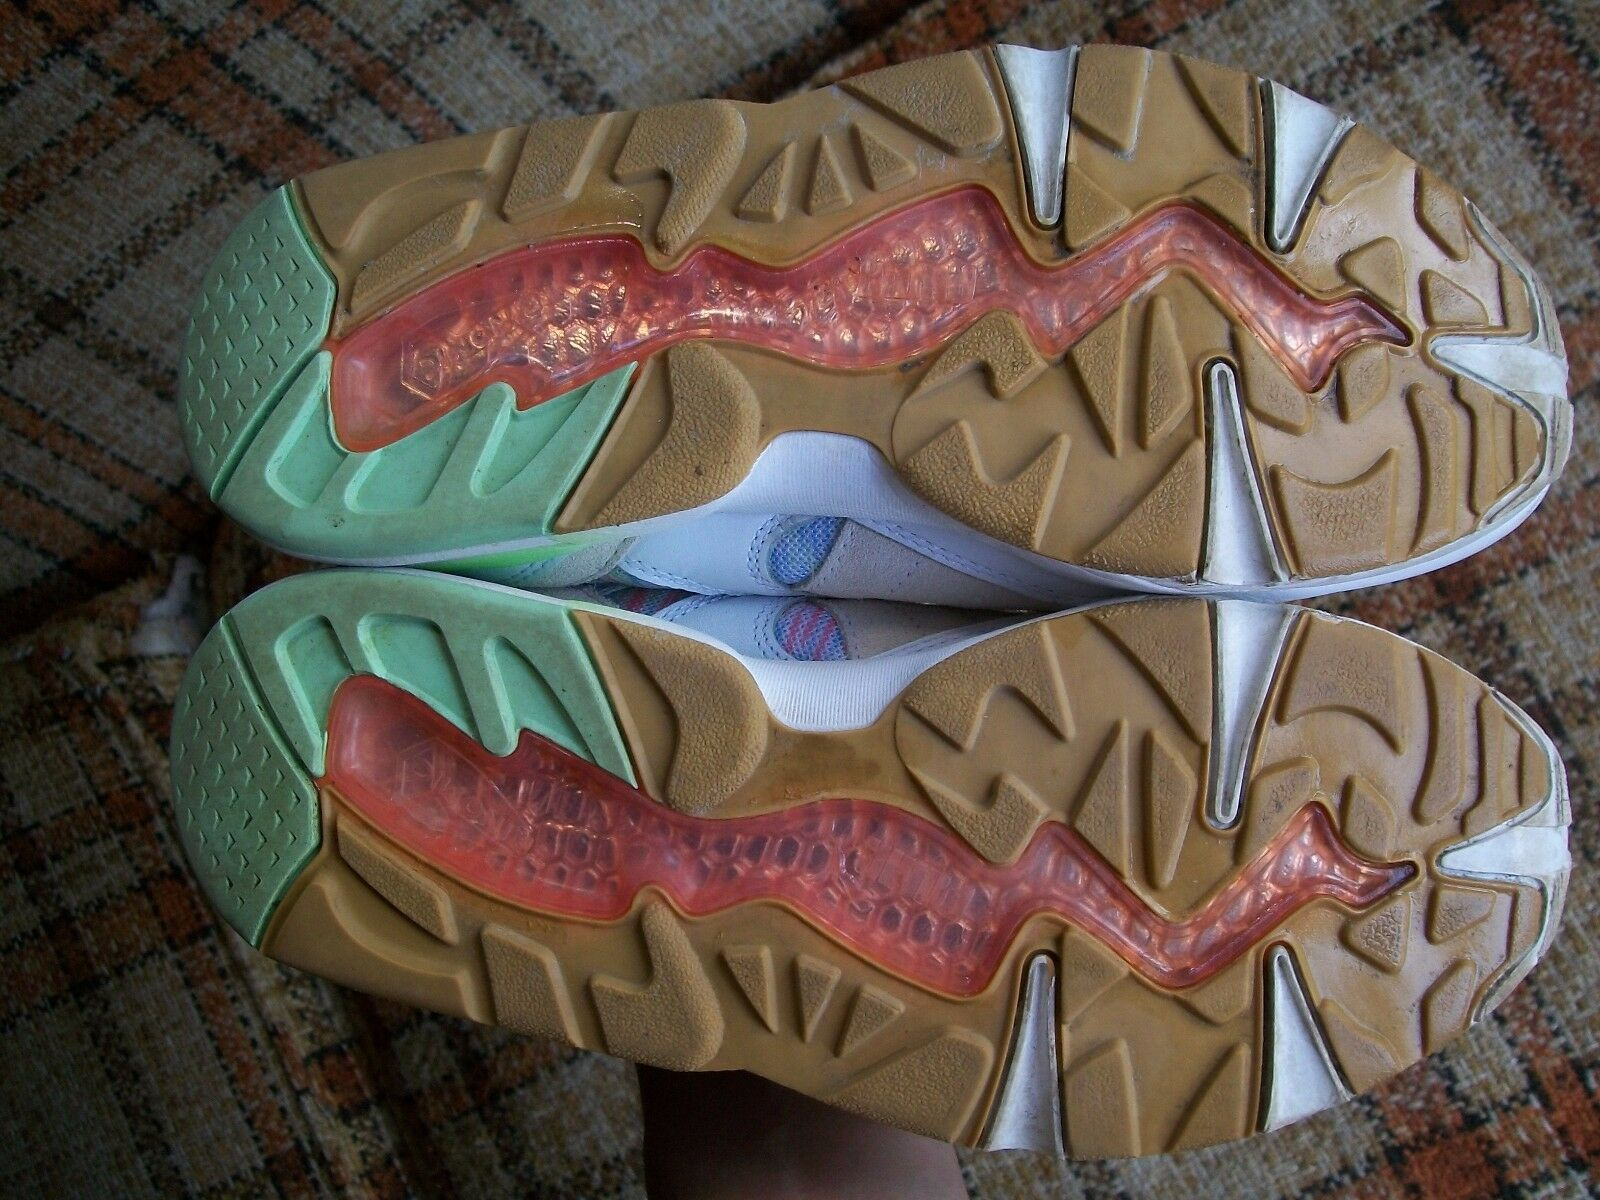 Puma Womens Size Shoes 8.5 () Trinomic Multicolor Shoes Size 358070 01 bb6e7e